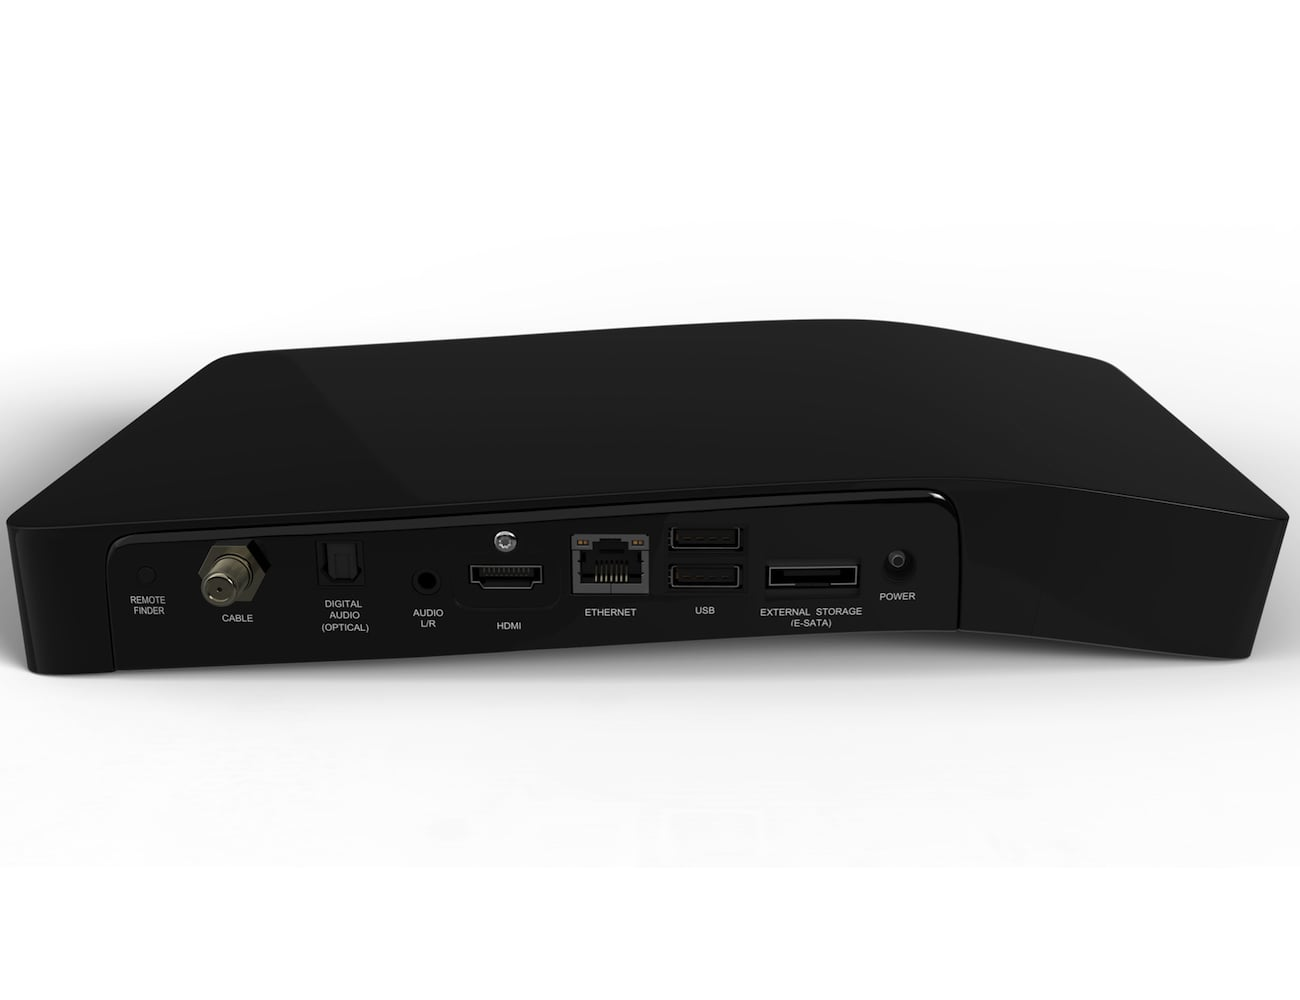 TiVo Bolt Vox DVR with Voice Control